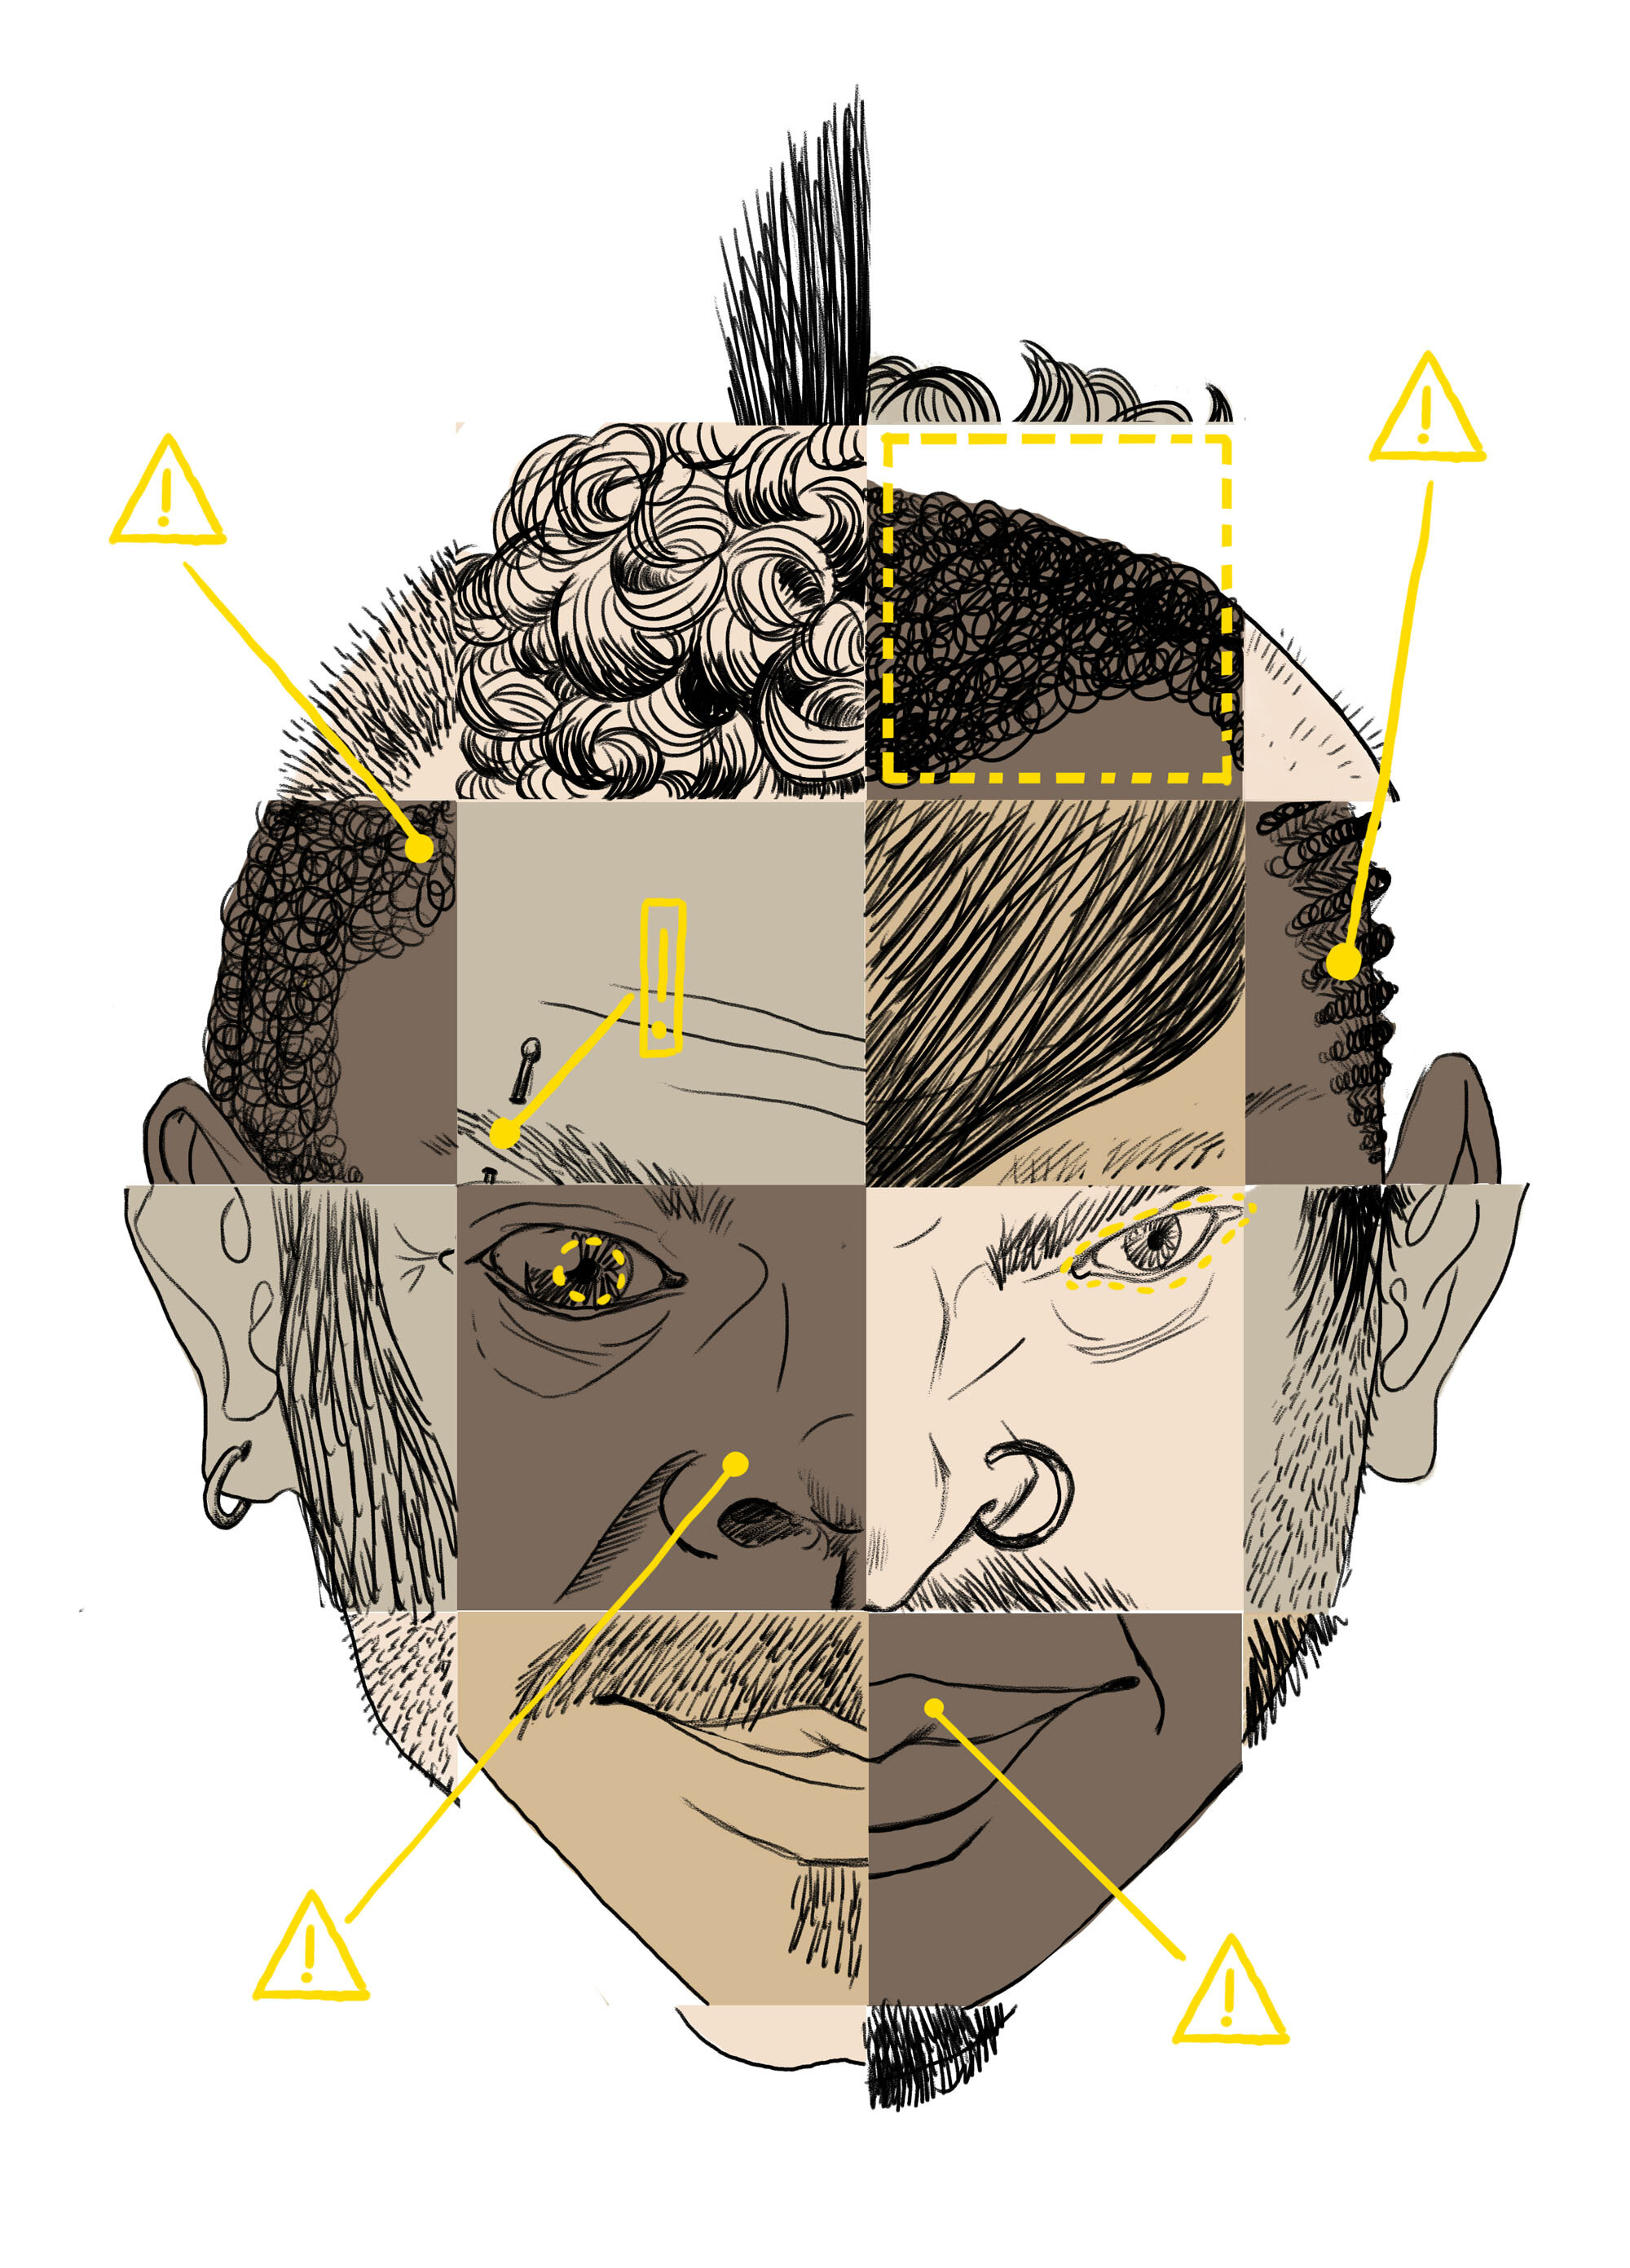 Automated Assumptions: The Failures of Facial Recognition - How technology has increased racial discrimination.